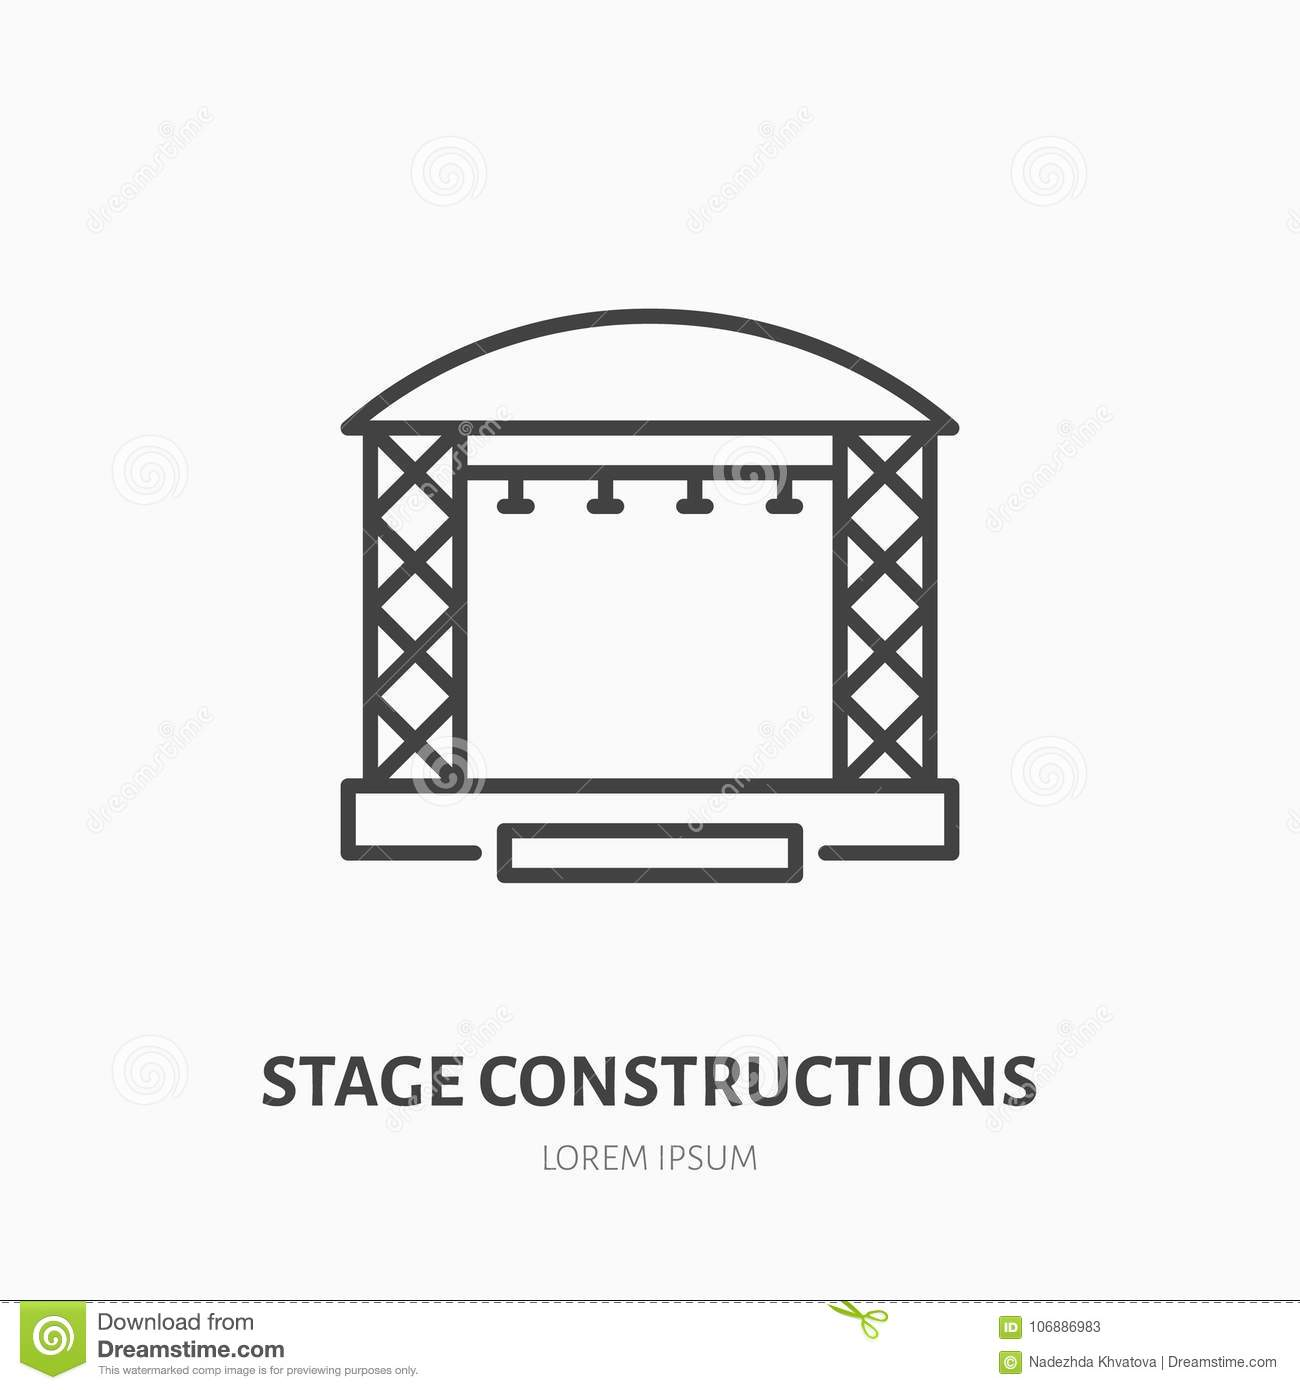 Stage Constructions Flat Line Icon Scene Event Equipment